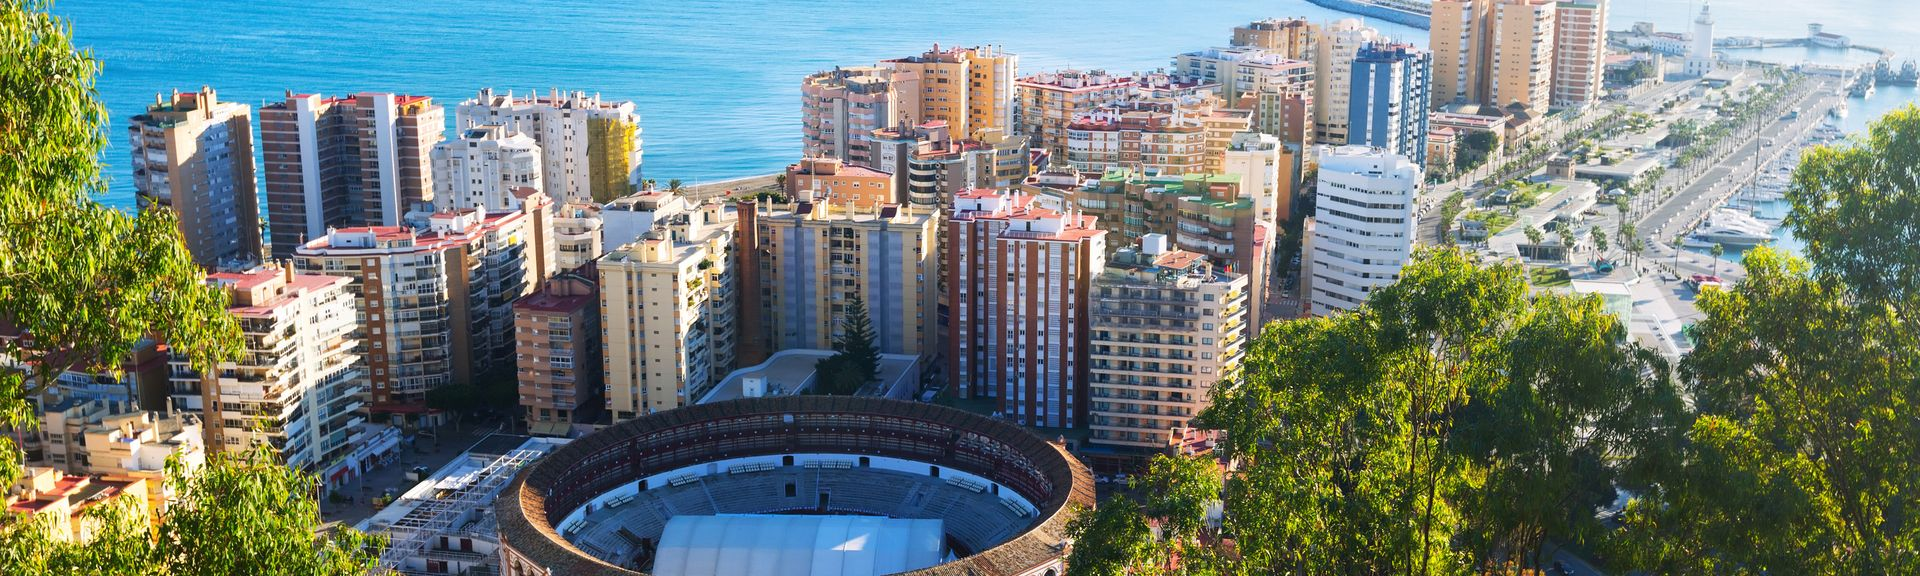 Málaga, Andalusia, Spain